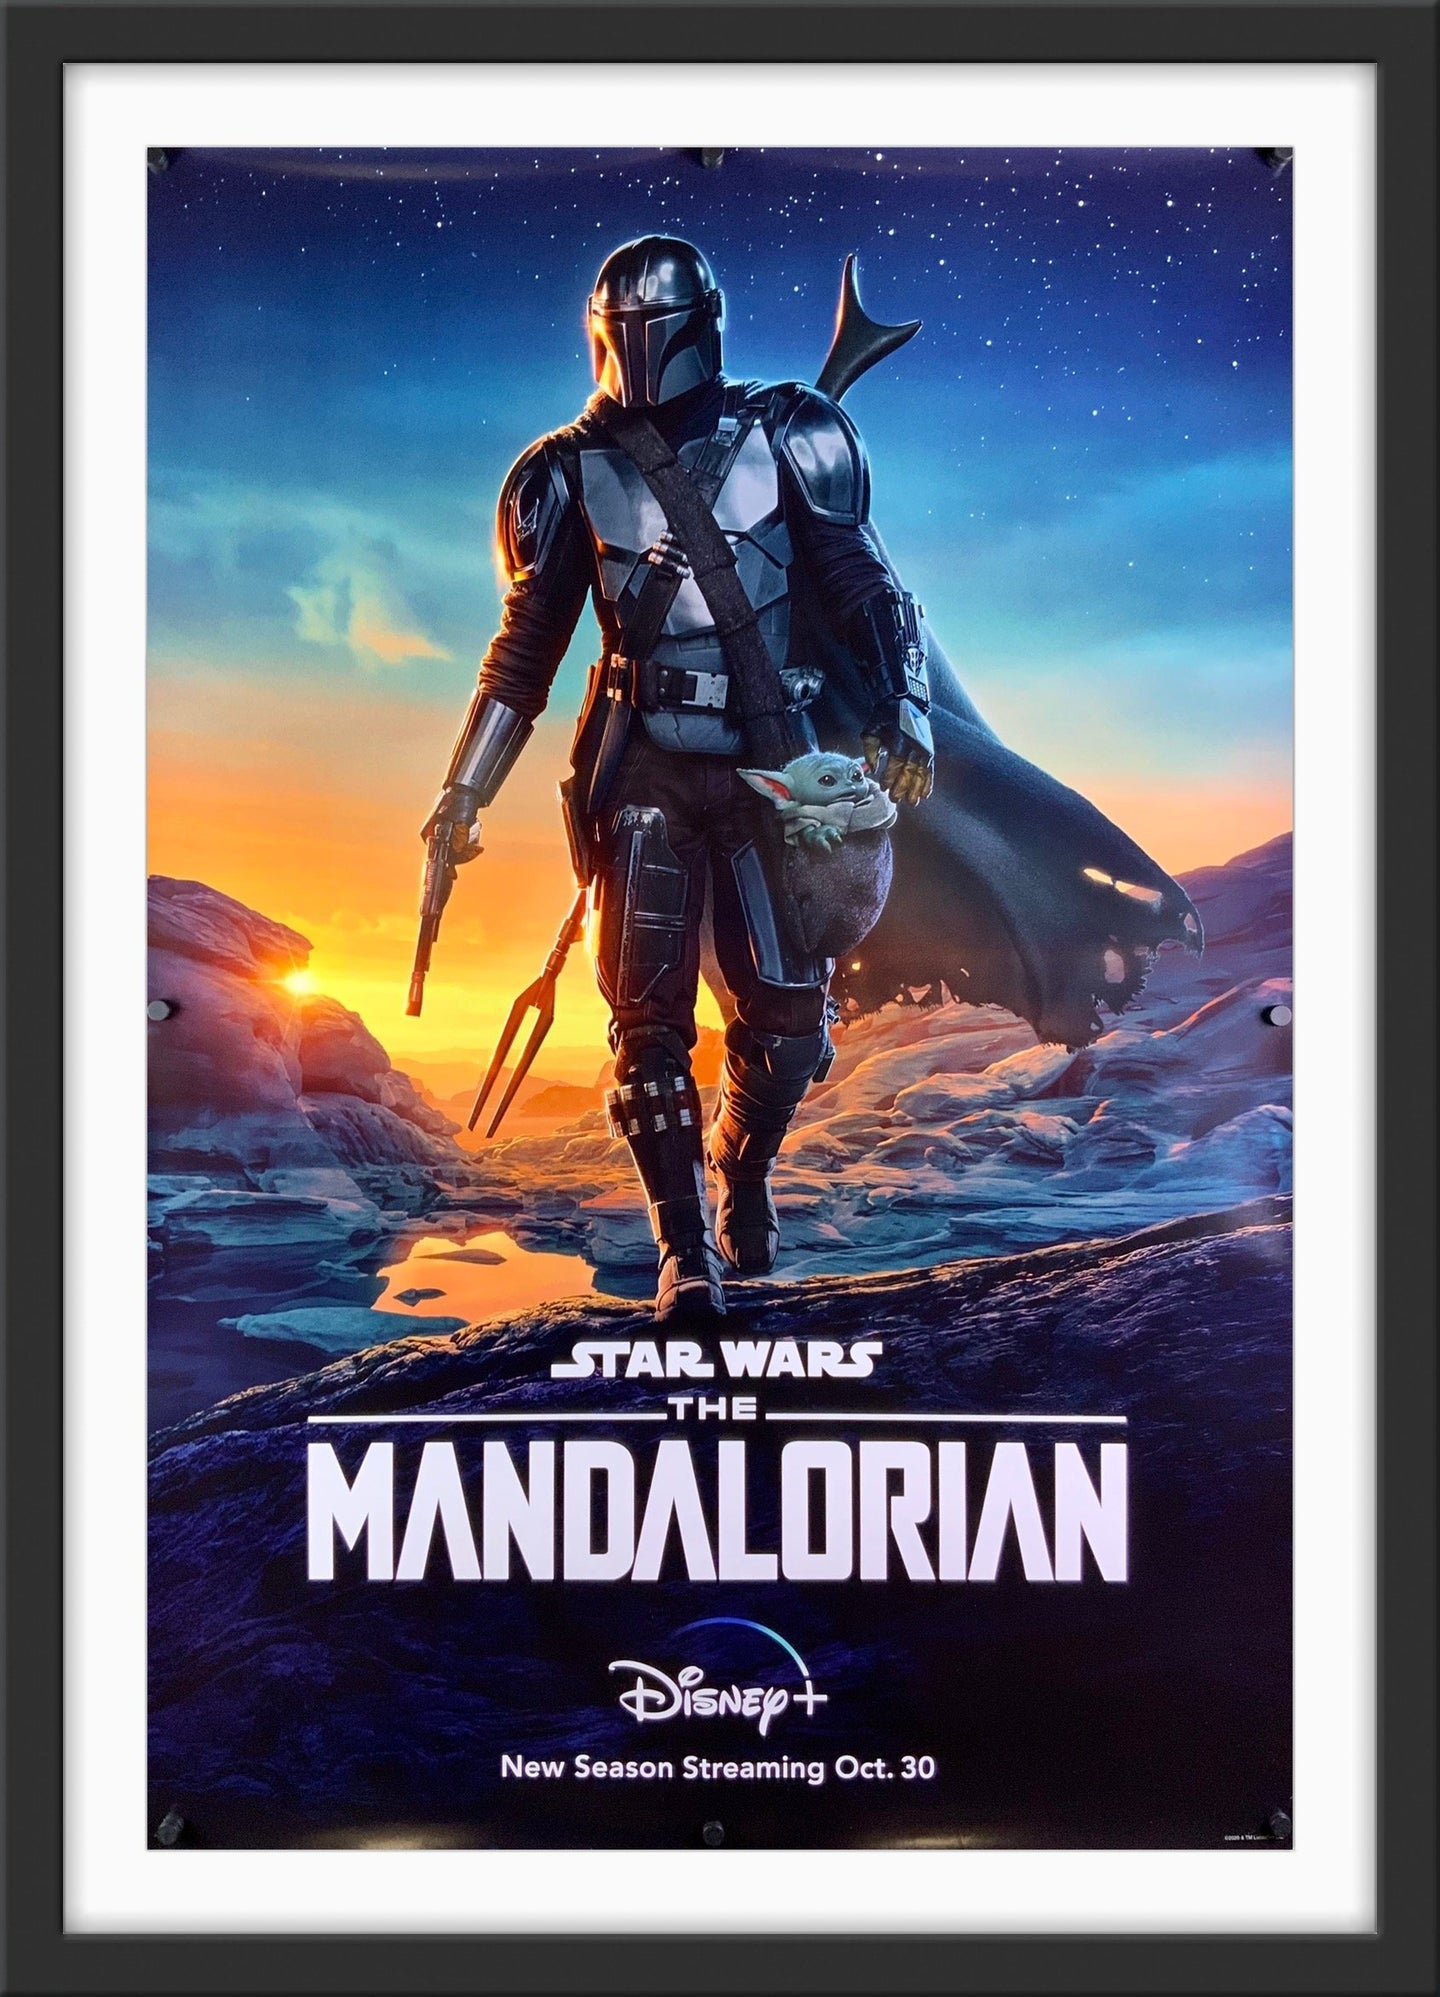 An original movie poster for the Disney+ Star Wars series The Mandalorian